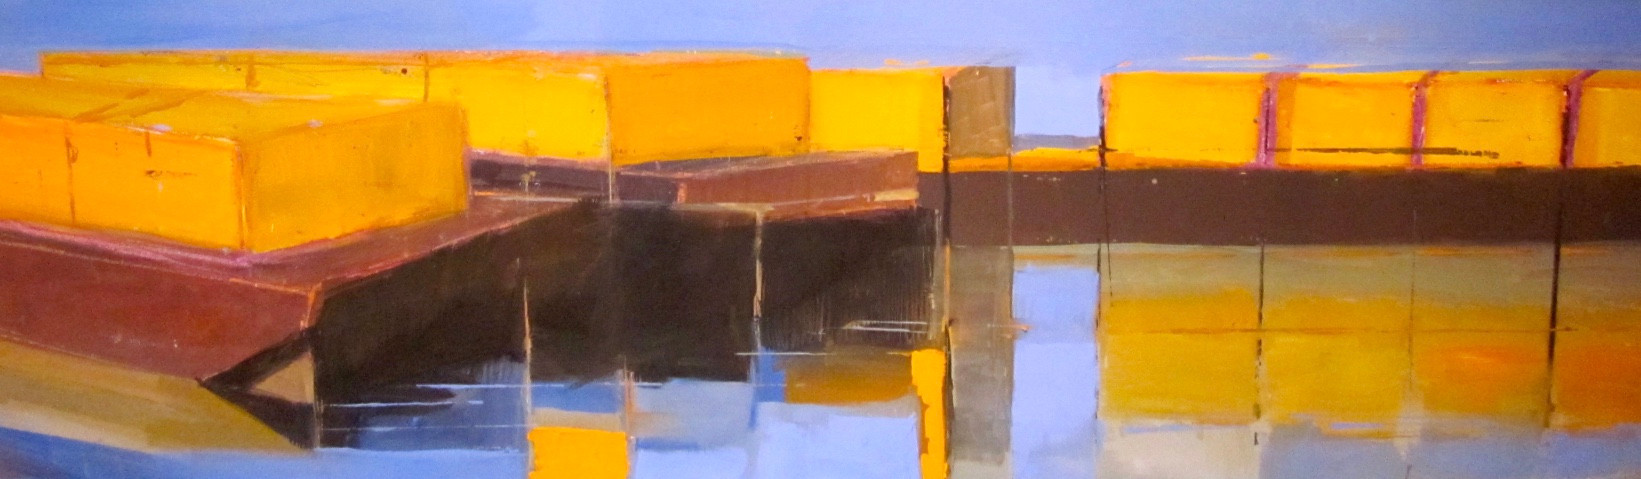 Barges II | 2011 | Oil on board | 31.4 x 101.2 cm